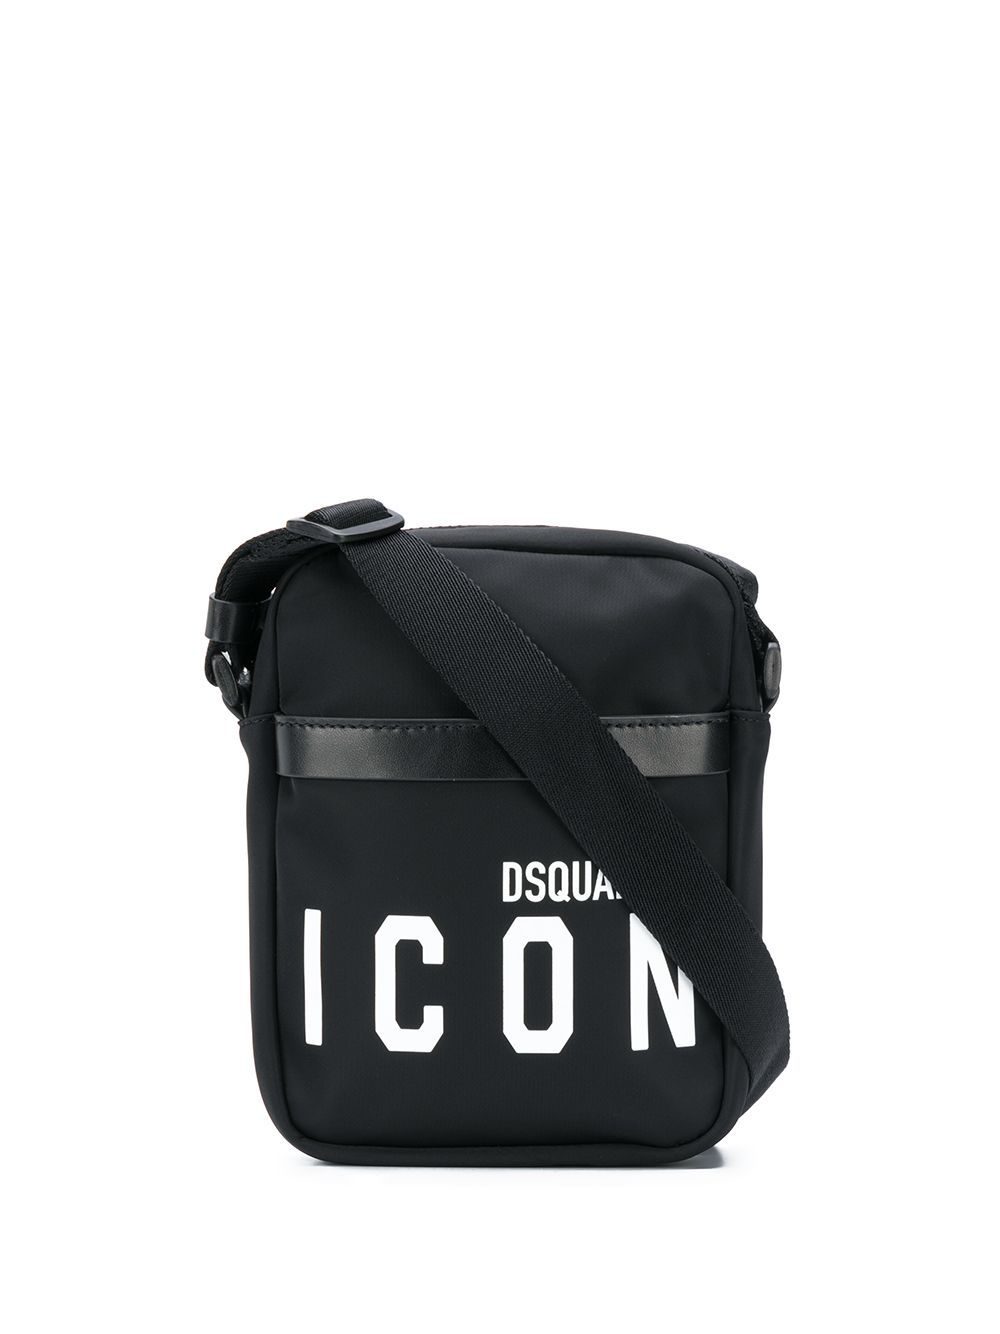 DSQUARED2 Icon Logo Messenger Bag Black/White